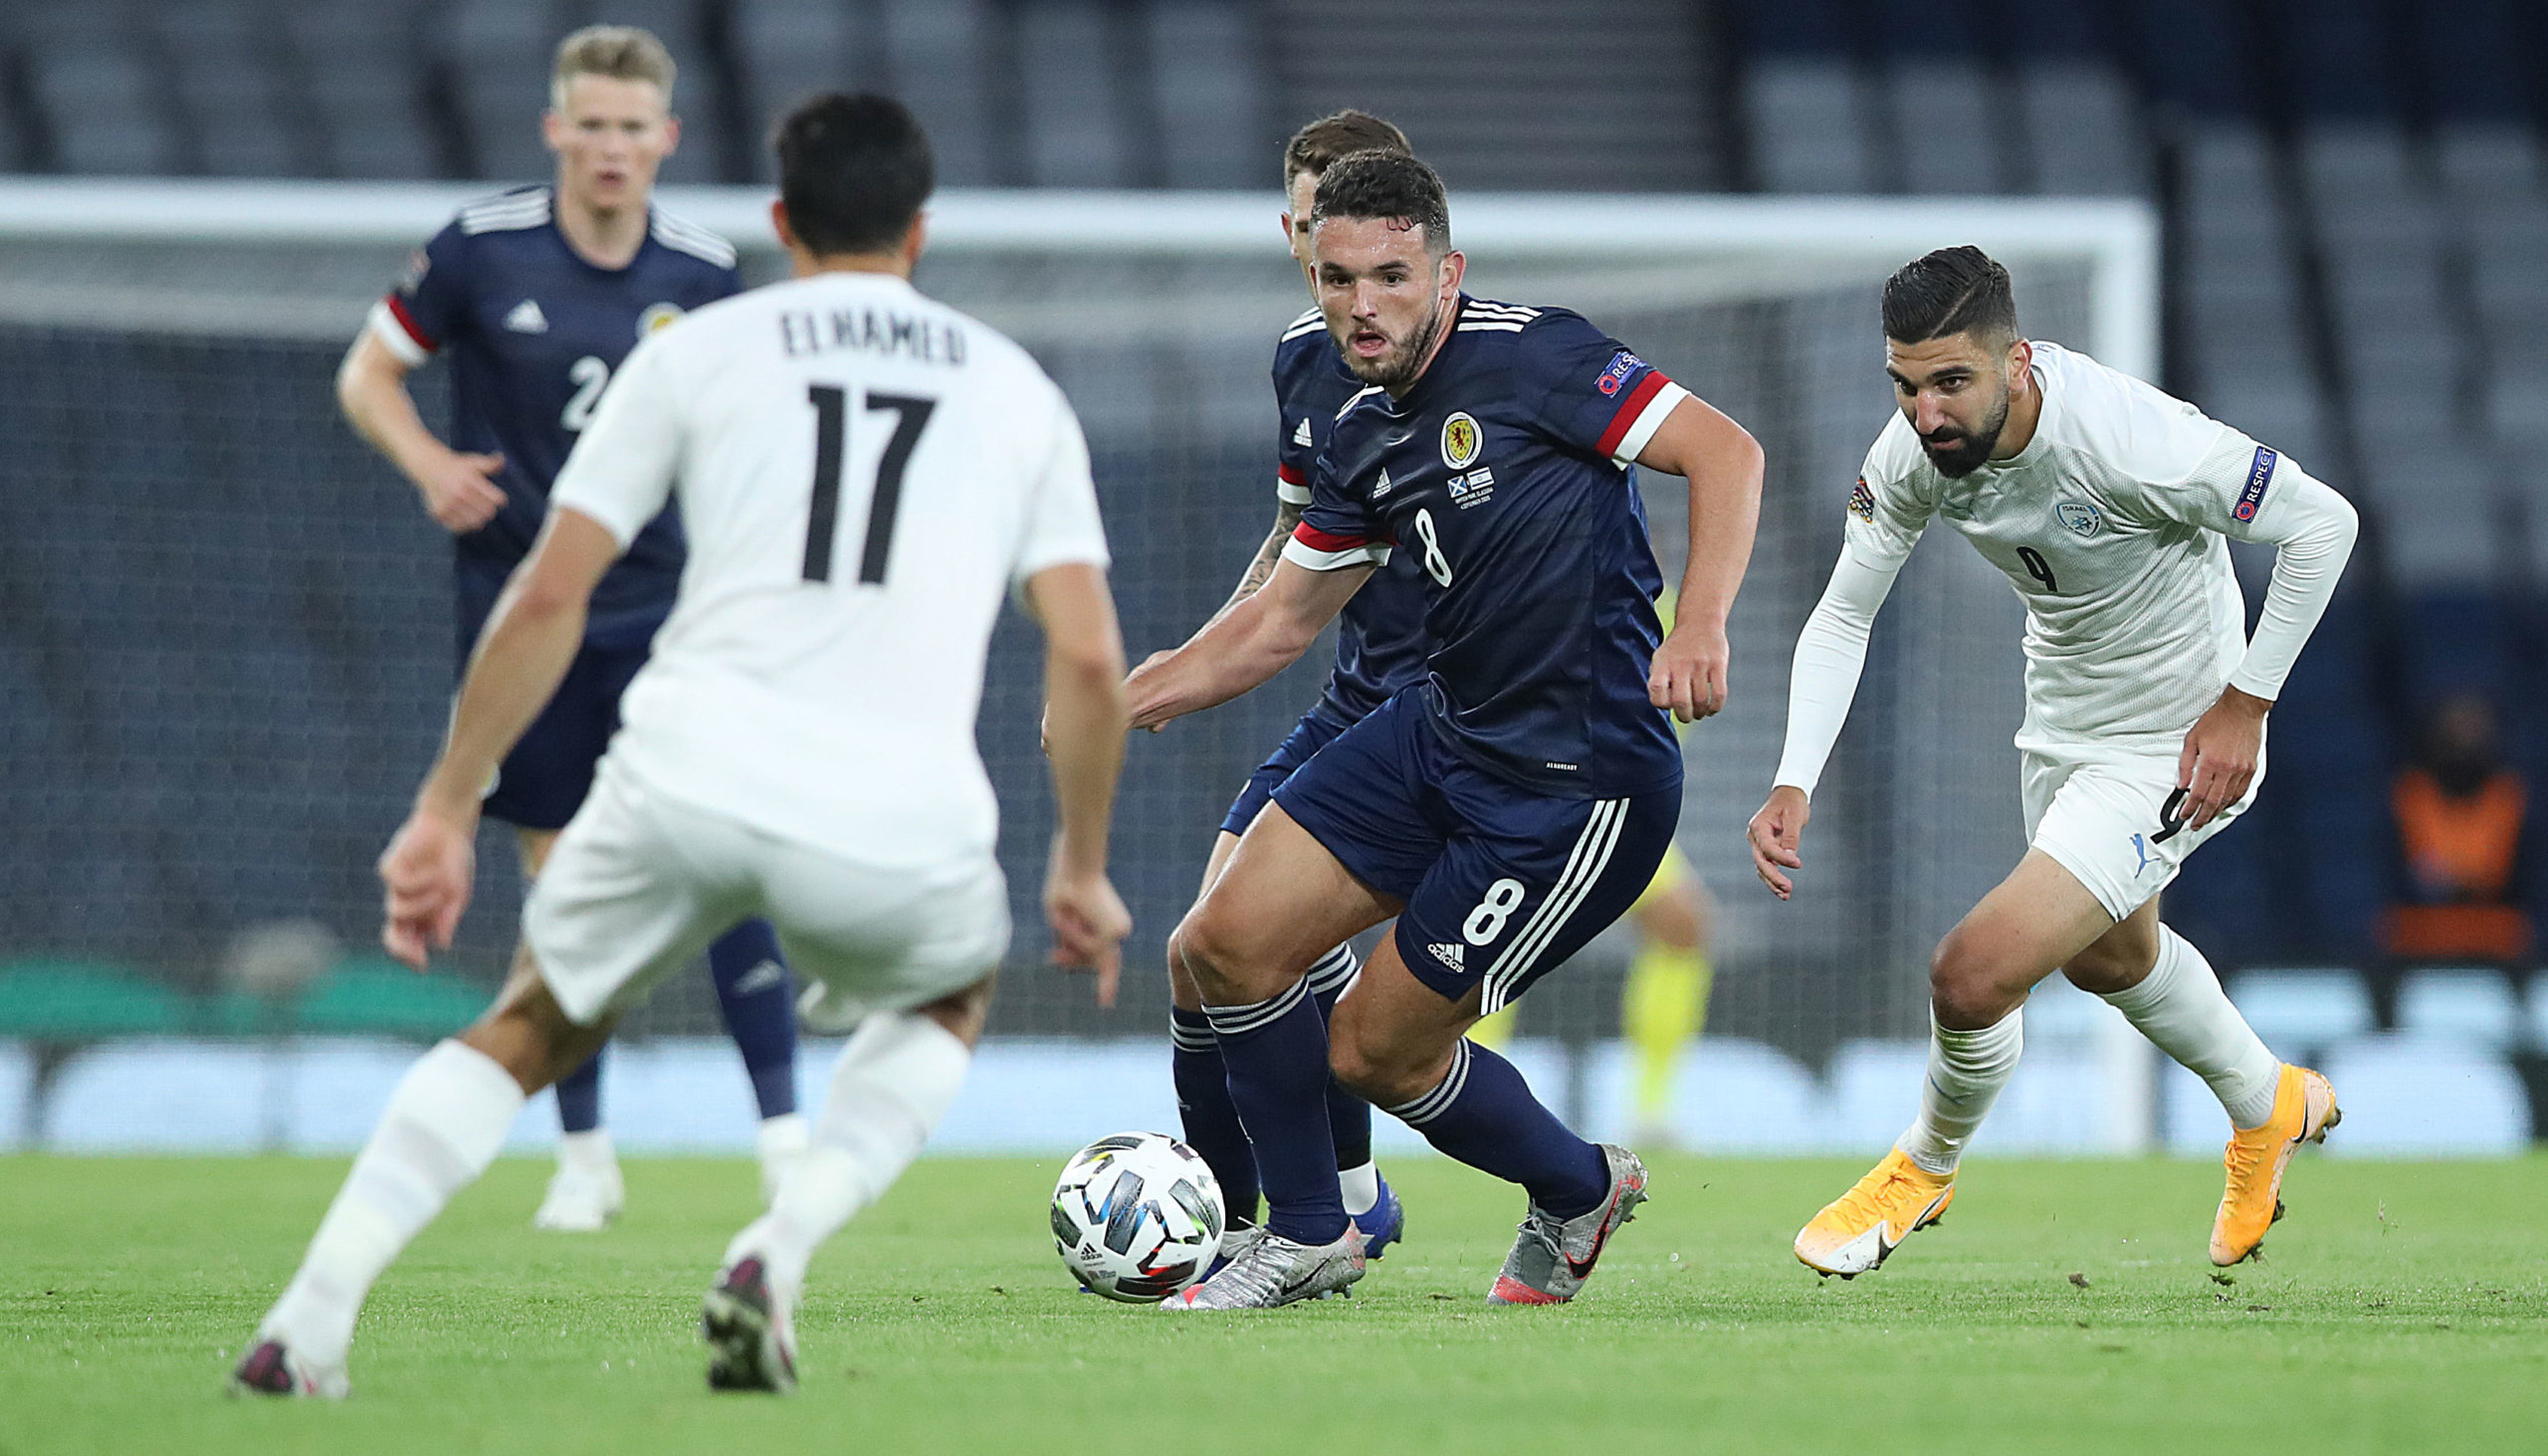 Israel vs Scotland: Familiar foes well matched